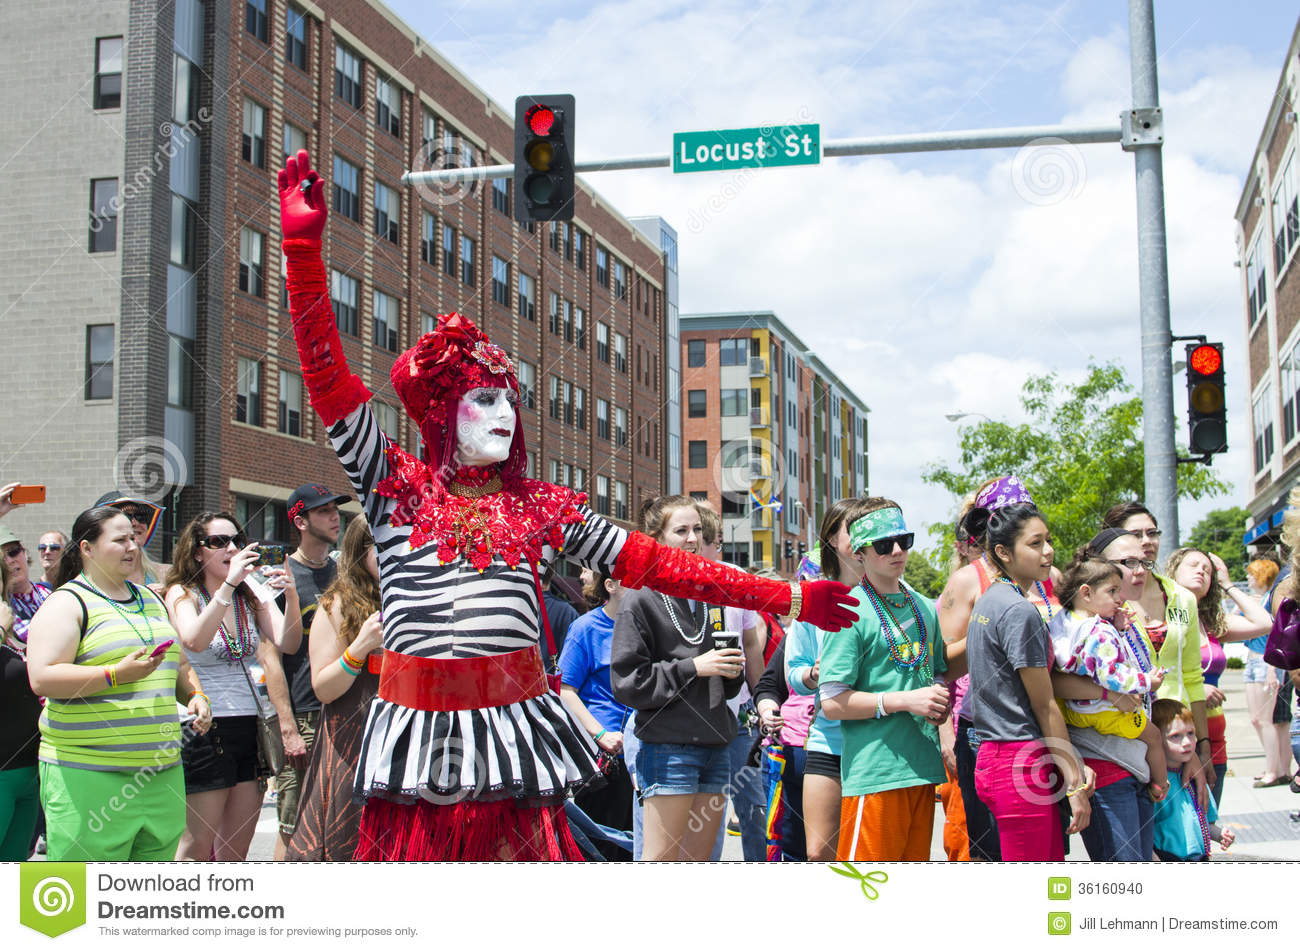 from Cedric des moines gay pride